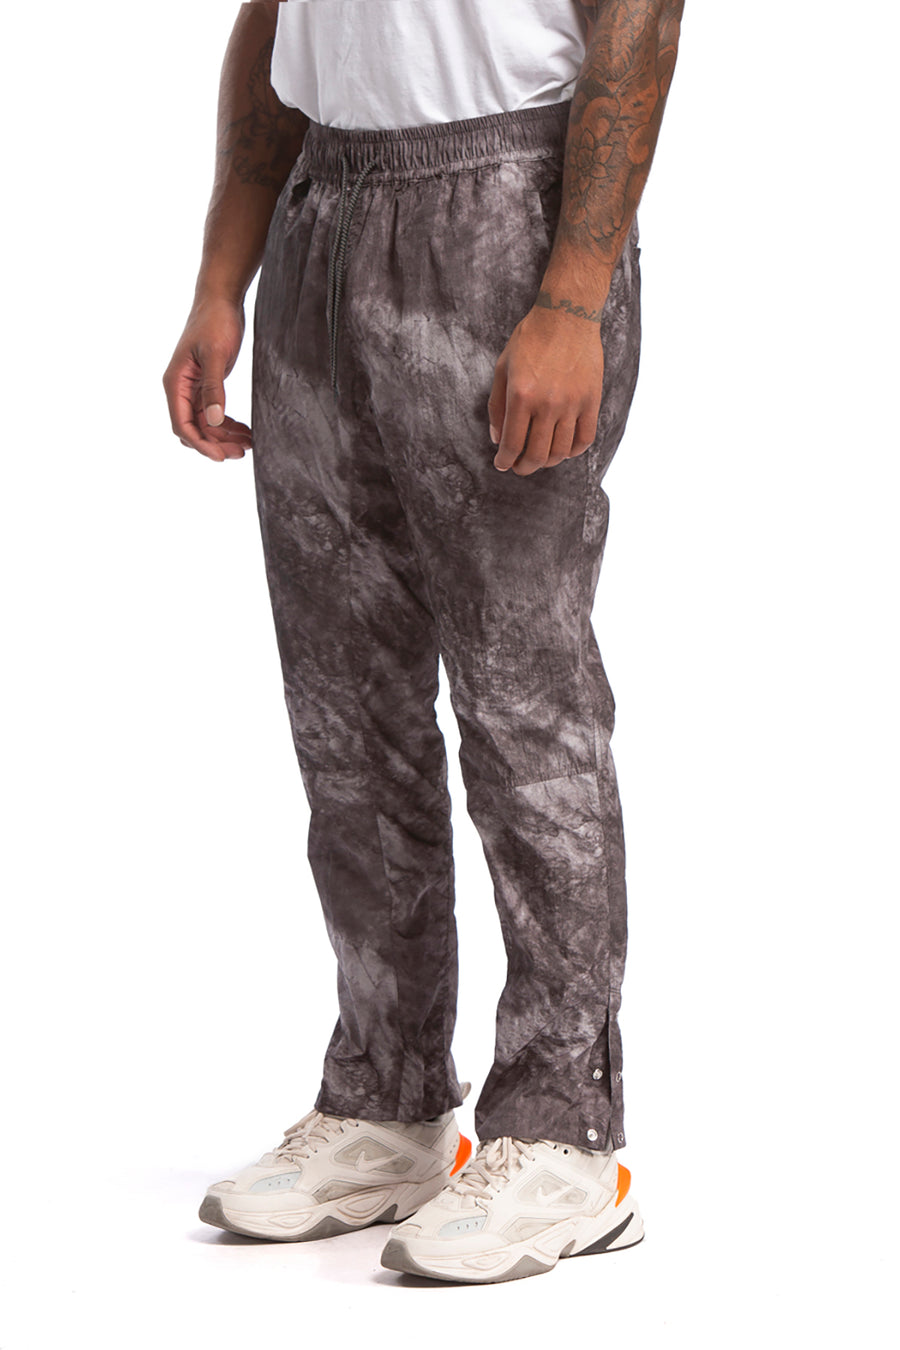 candorofficial - Grath Pant, Black Shadow Camo - Bottoms